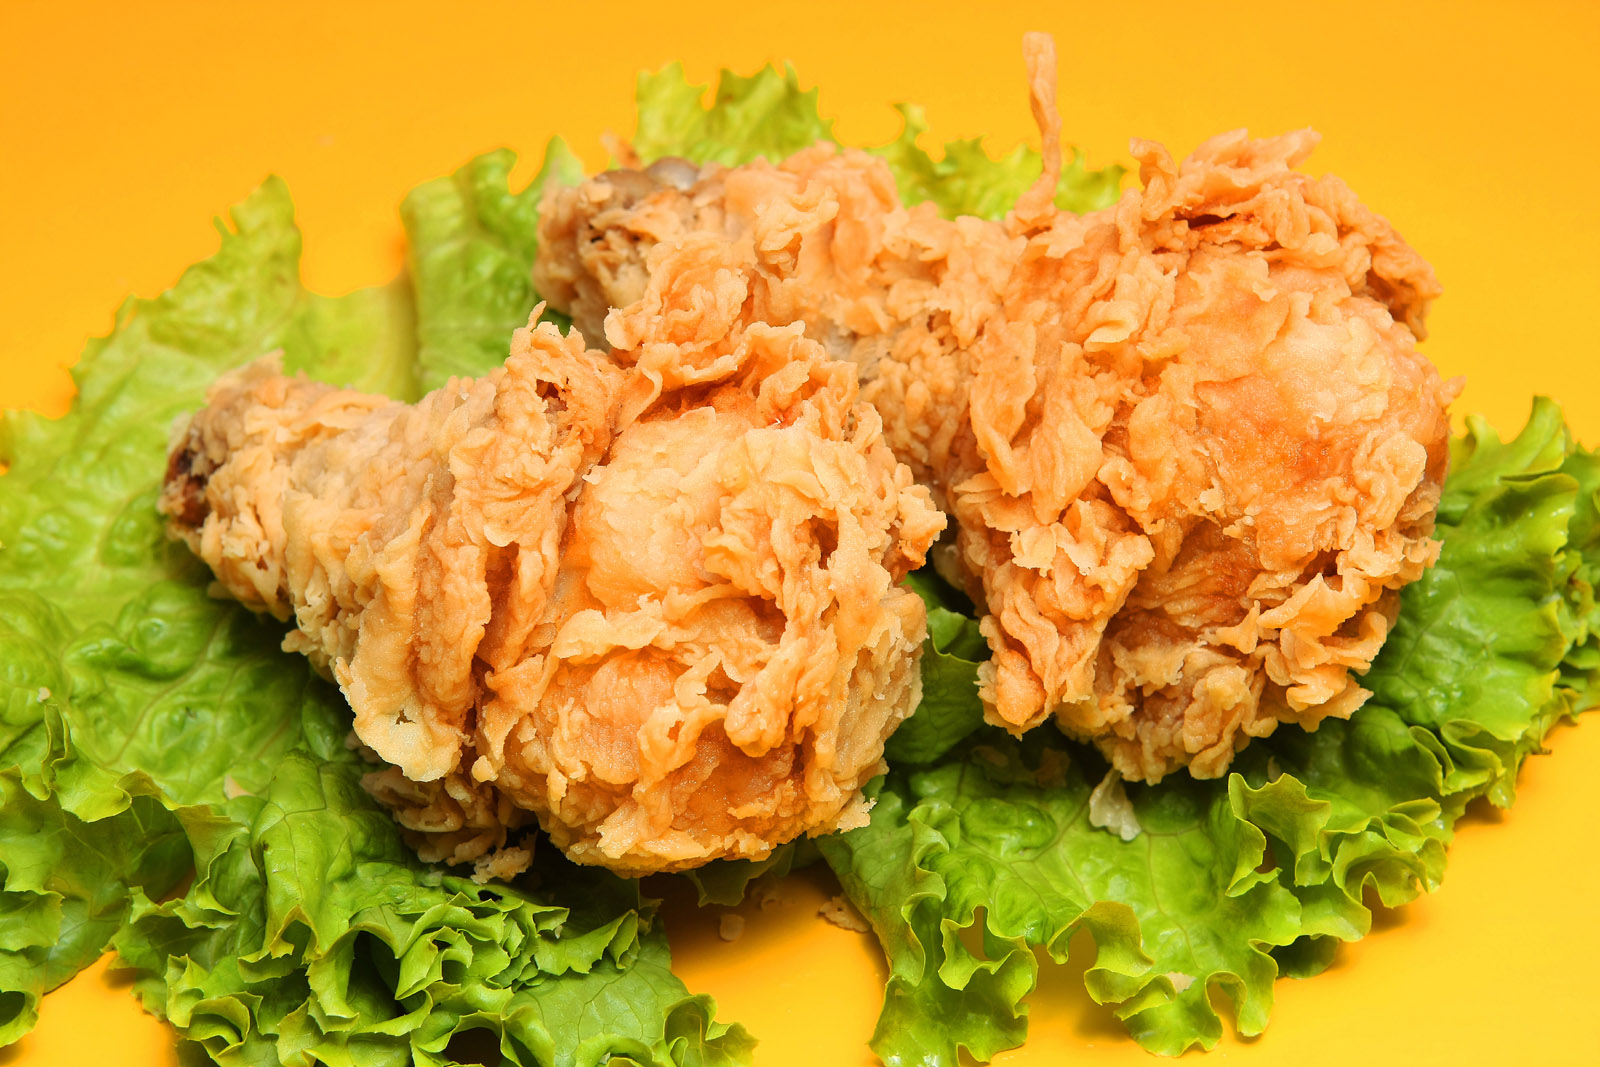 HD hamburgers and fried chicken picture 14013